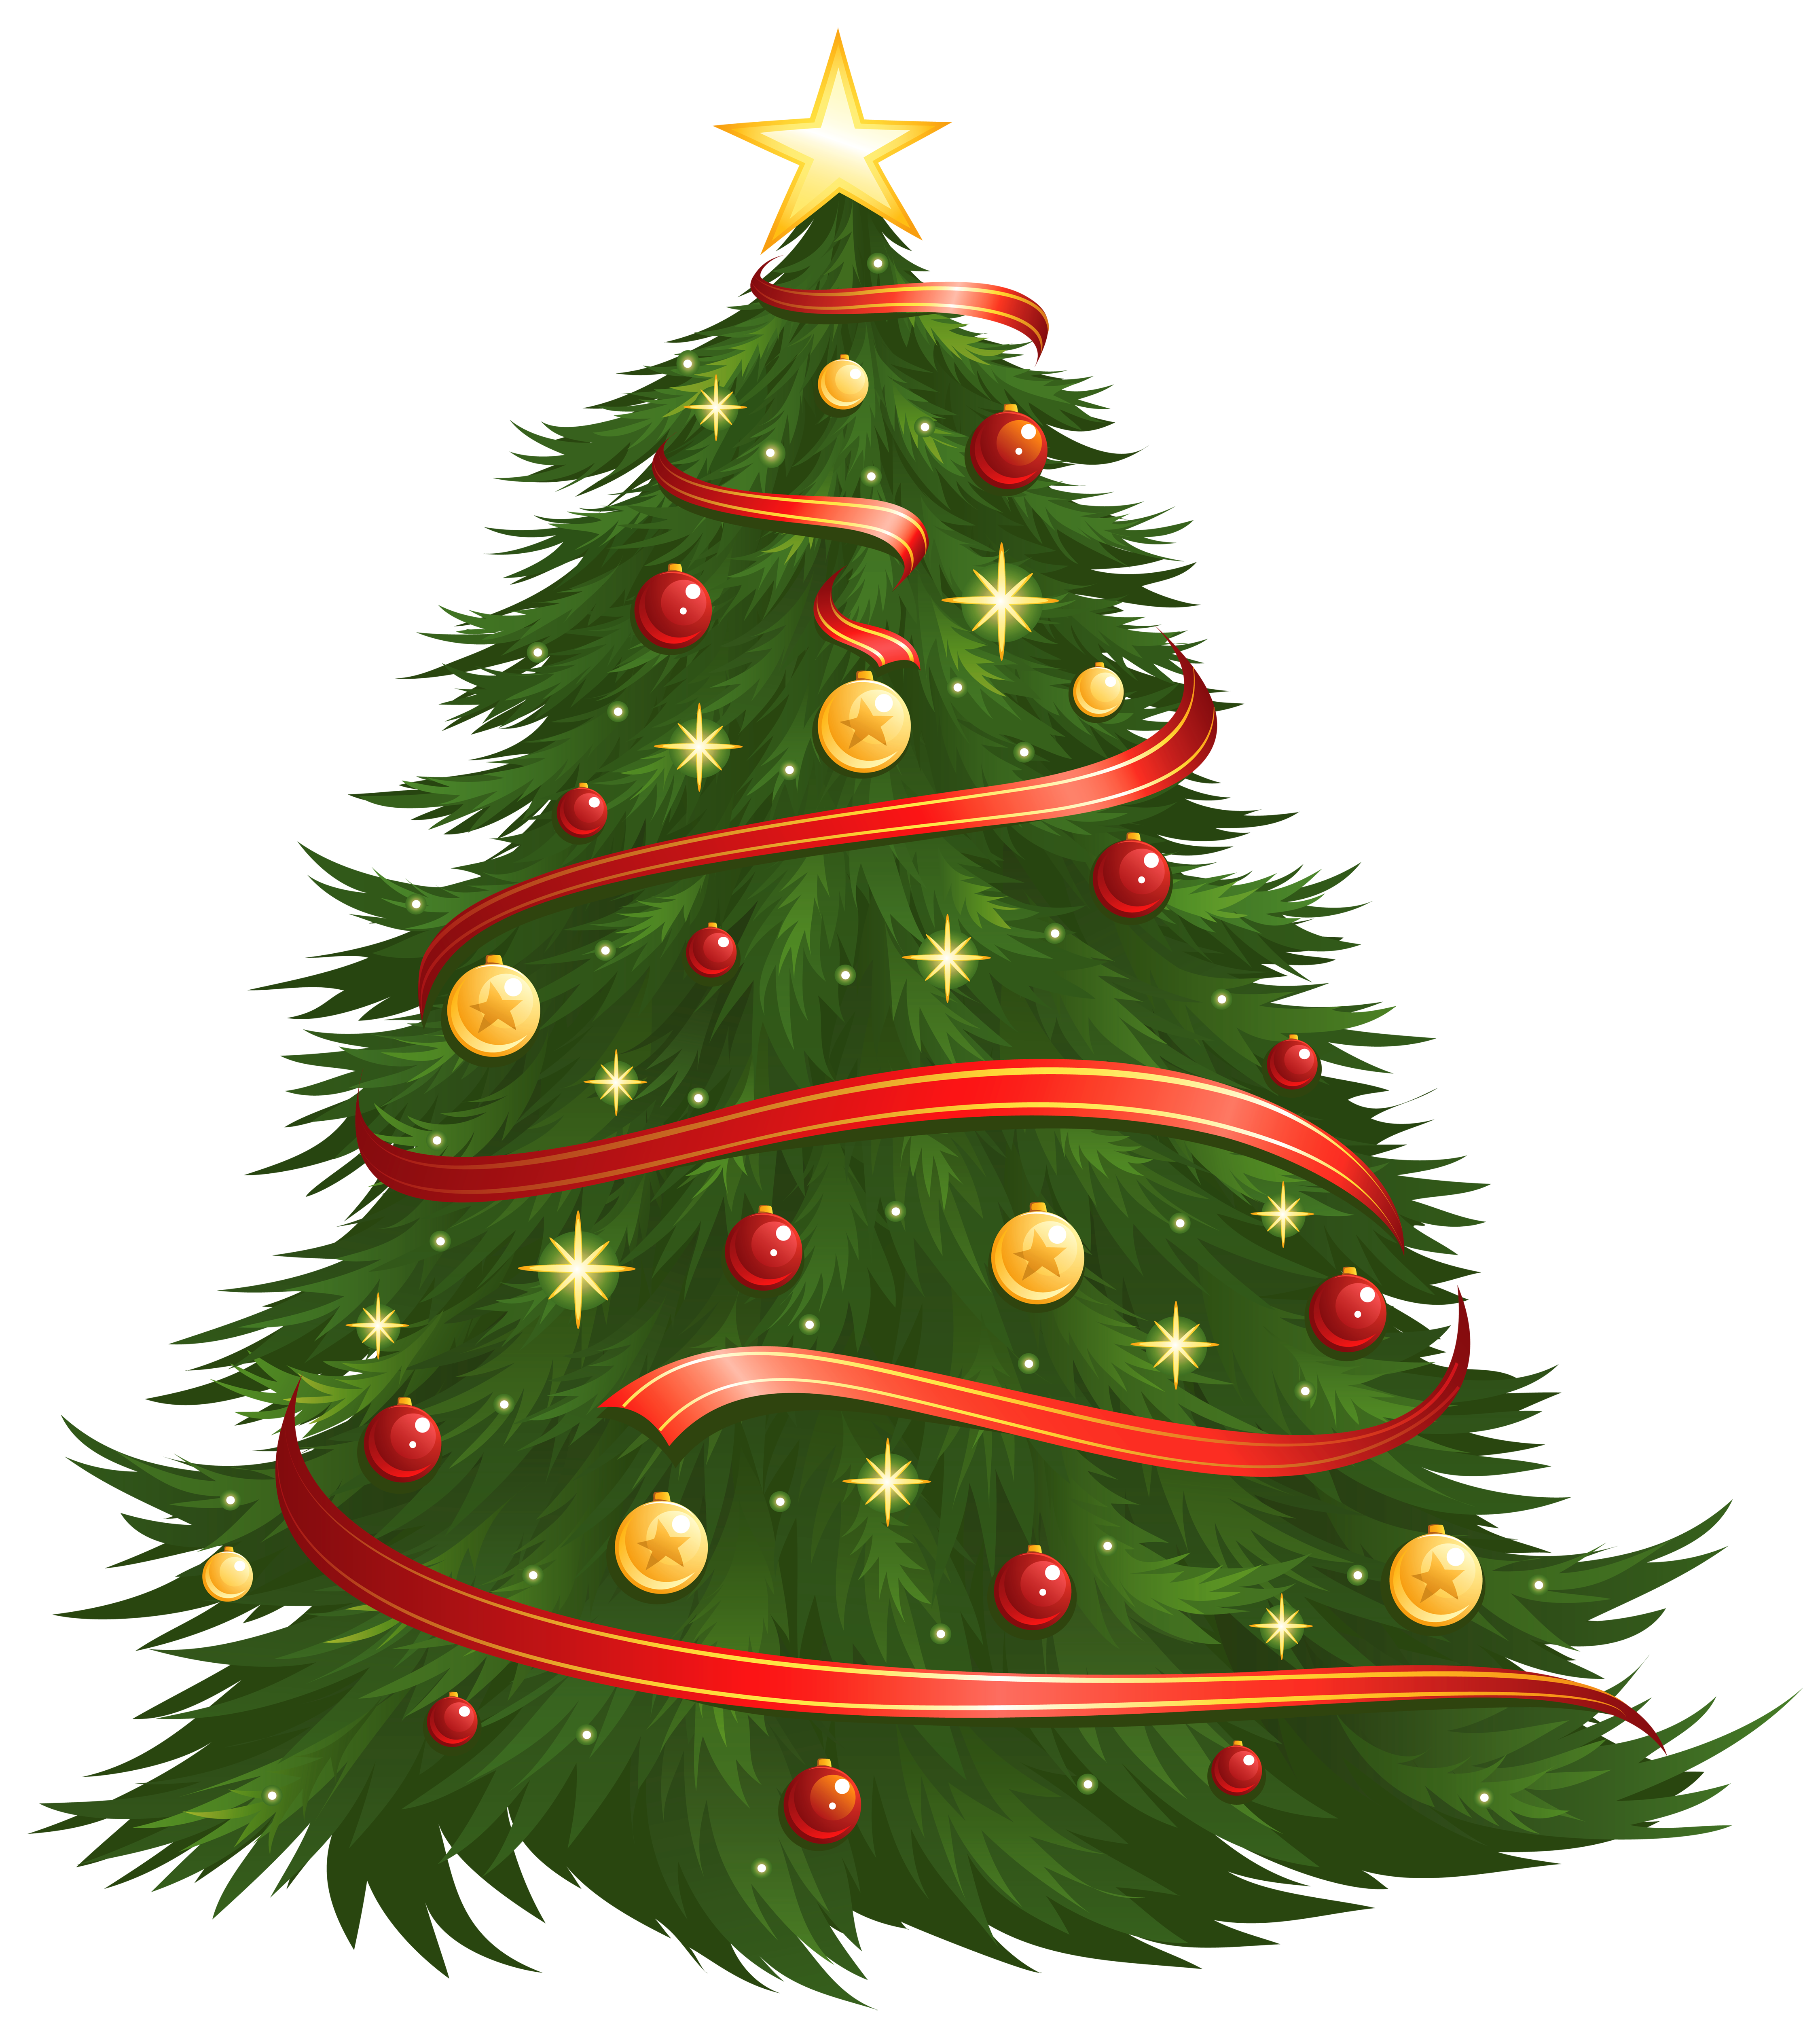 decorated christmas tree images indiepedia #11607